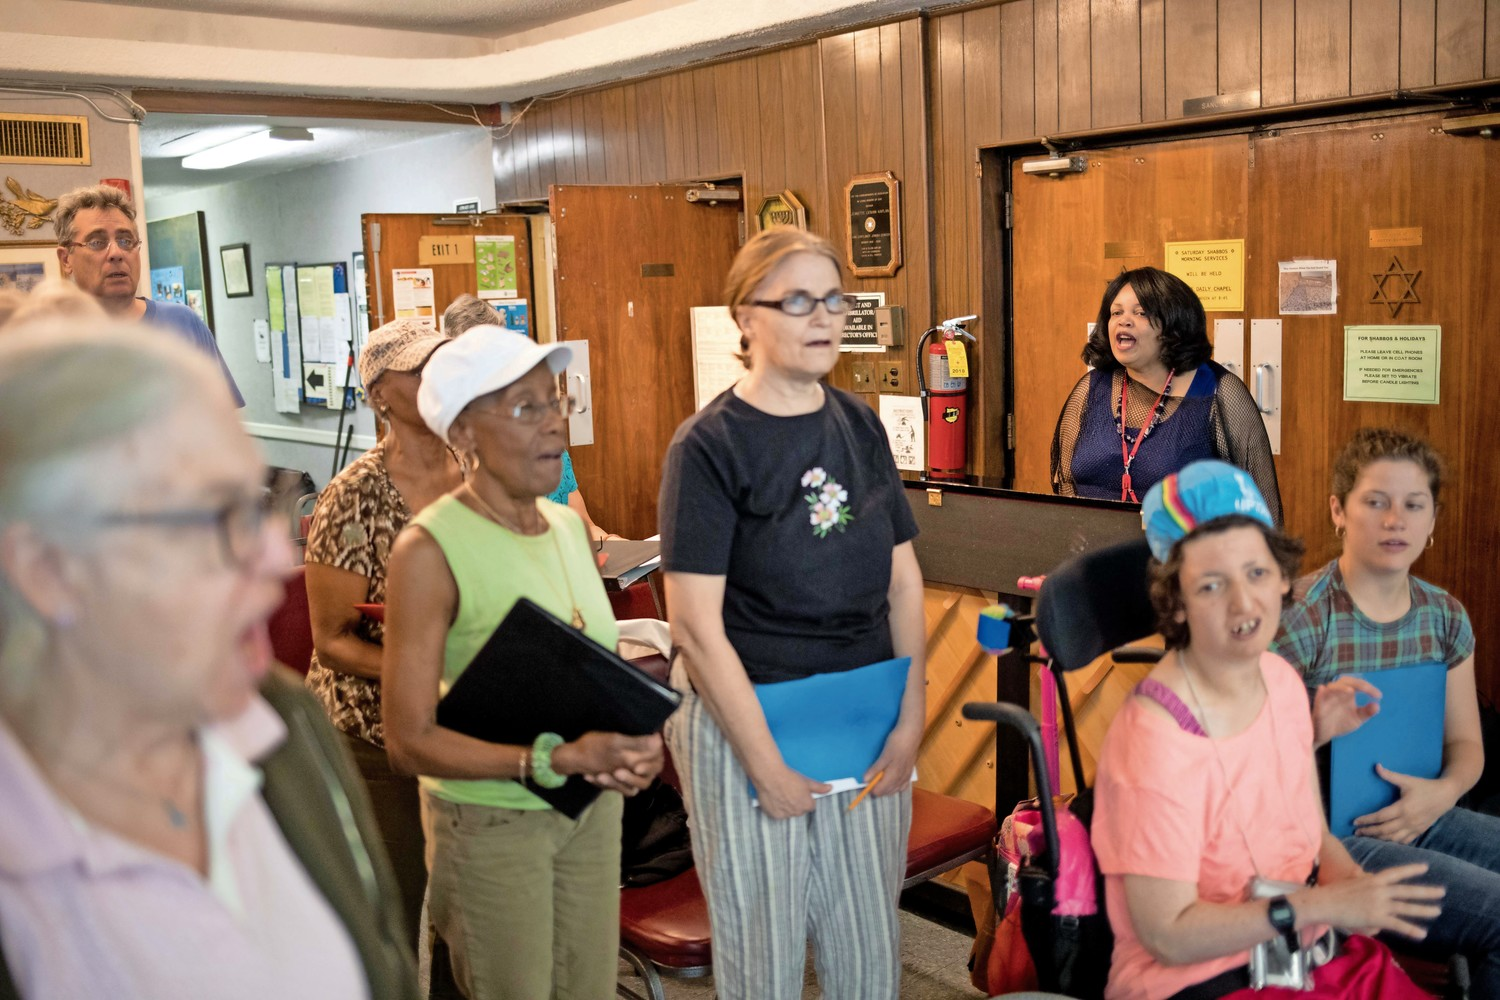 Cheryl Warfield leads singers through vocal exercises during a rehearsal at the JASA Van Cortlandt Senior Center. Warfield has been teaching senior citizens at the center how to sing for an upcoming performance on Independence Day.